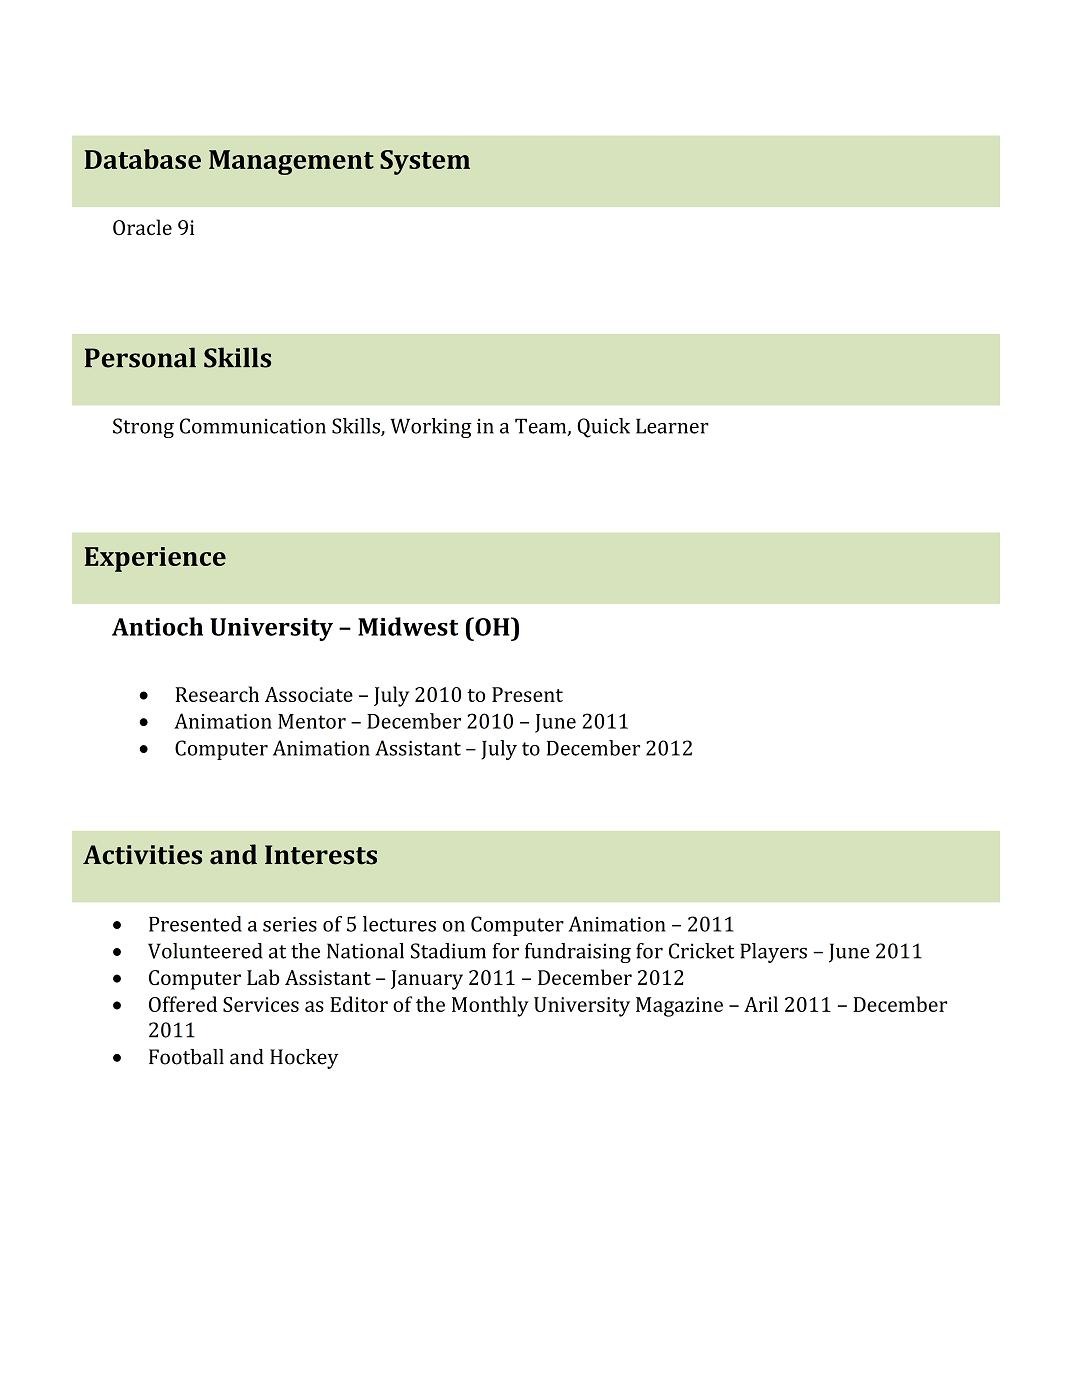 Resume Resume Format For Mba Finance Freshers Pdf resume format for freshers pdf free download home pinterest the world s catalog of ideas infovia net